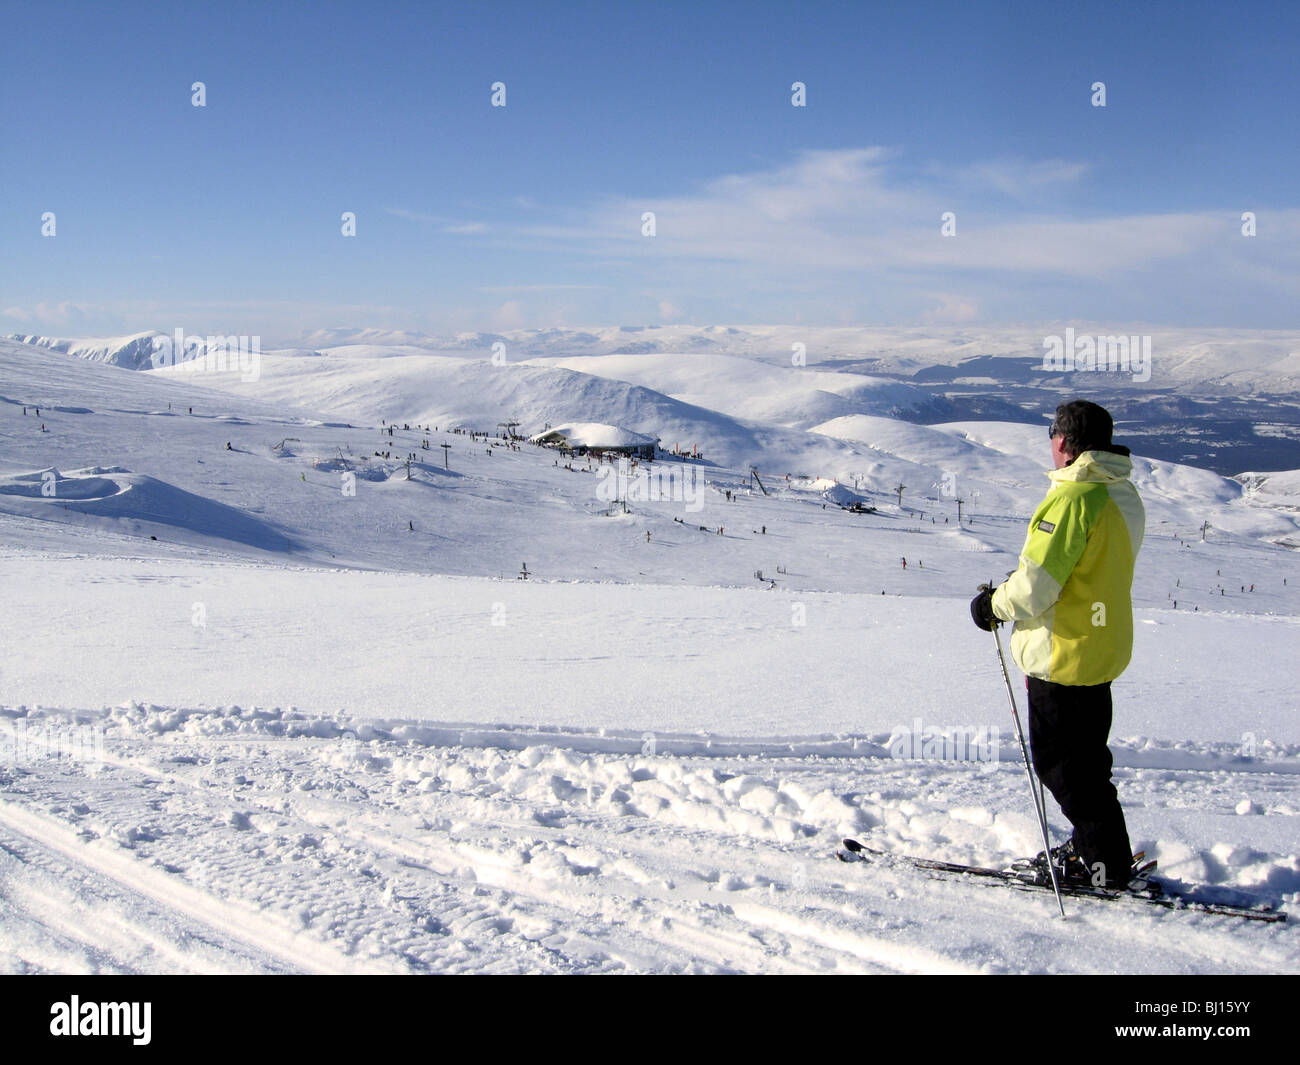 Skiing in the Cairngorm Mountains Scotland in 2010 - Stock Image